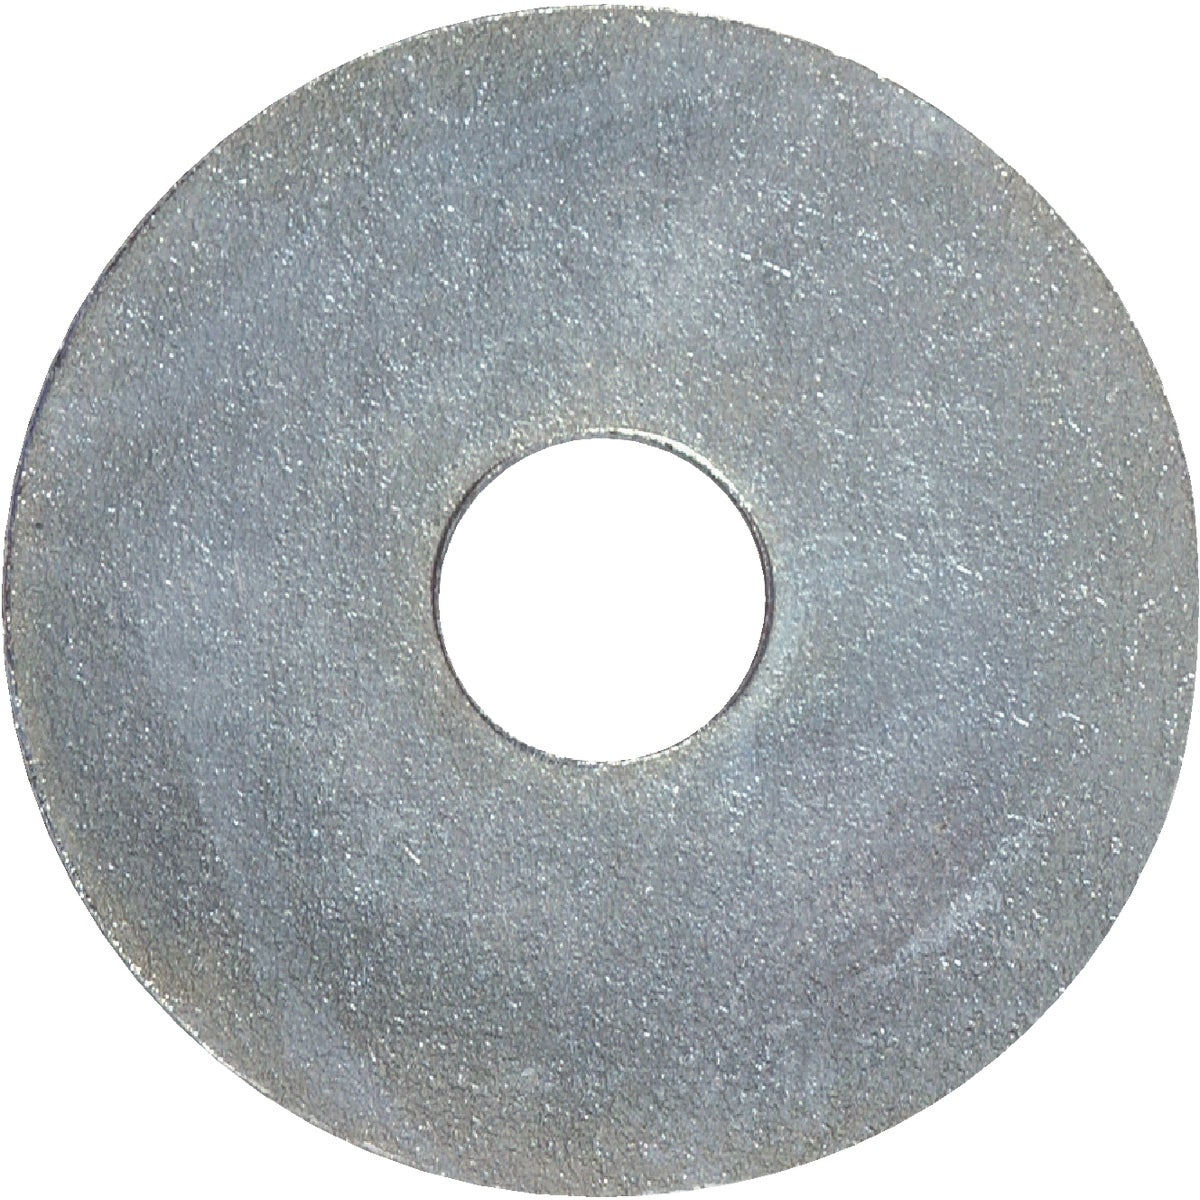 1/4X1 FENDER WASHER - 290012 by Hillman Fastener